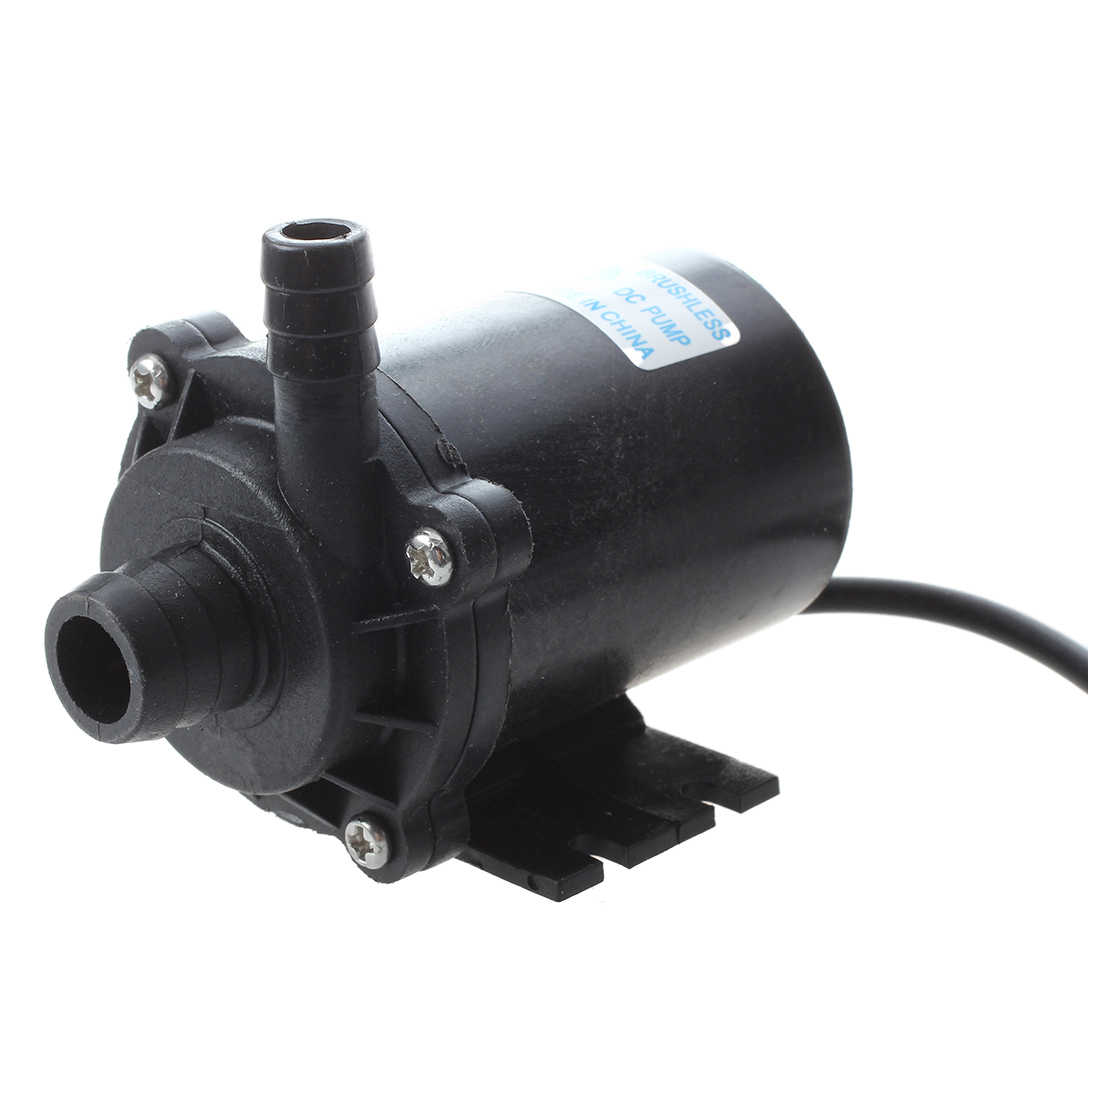 Submersible water pump for fountain pond brushless 24v for Submersible pond pumps